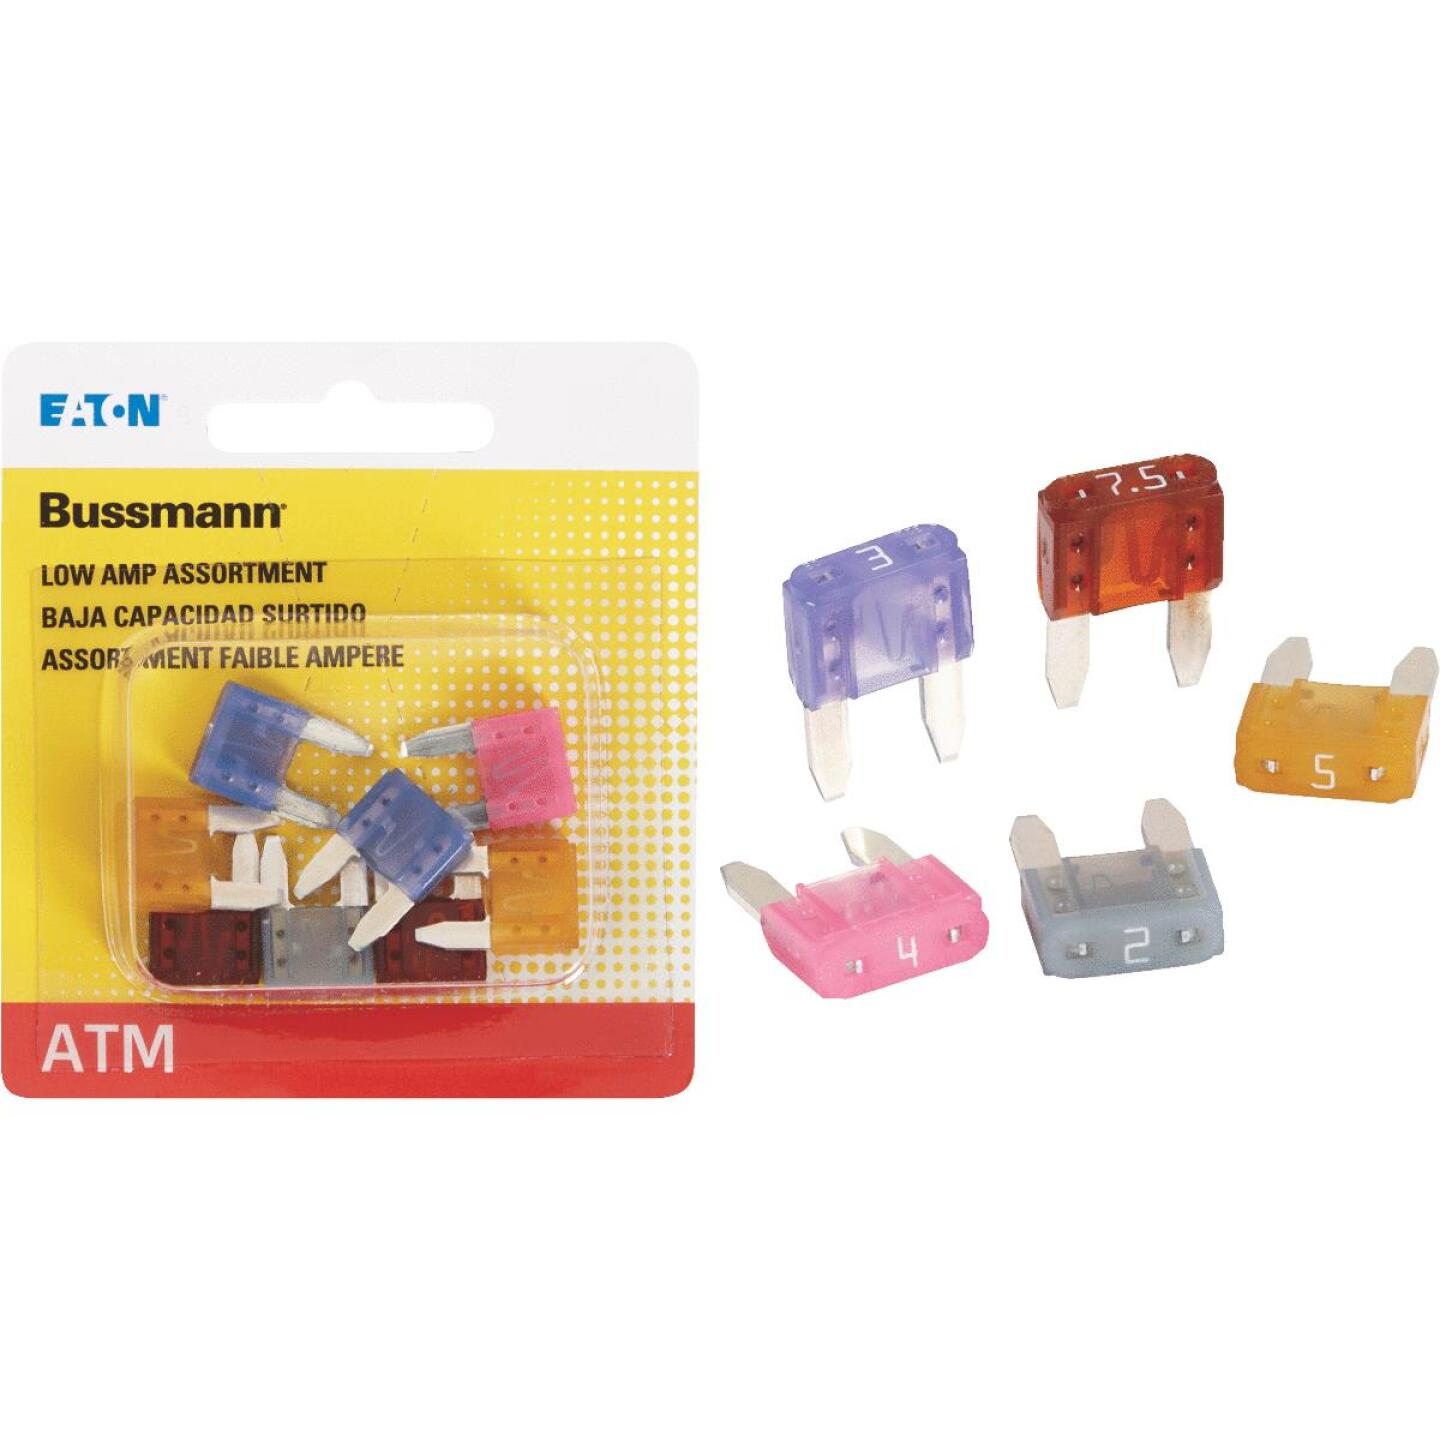 Bussmann ATM Low Amp Fuse Assortment (8-Piece) Image 1